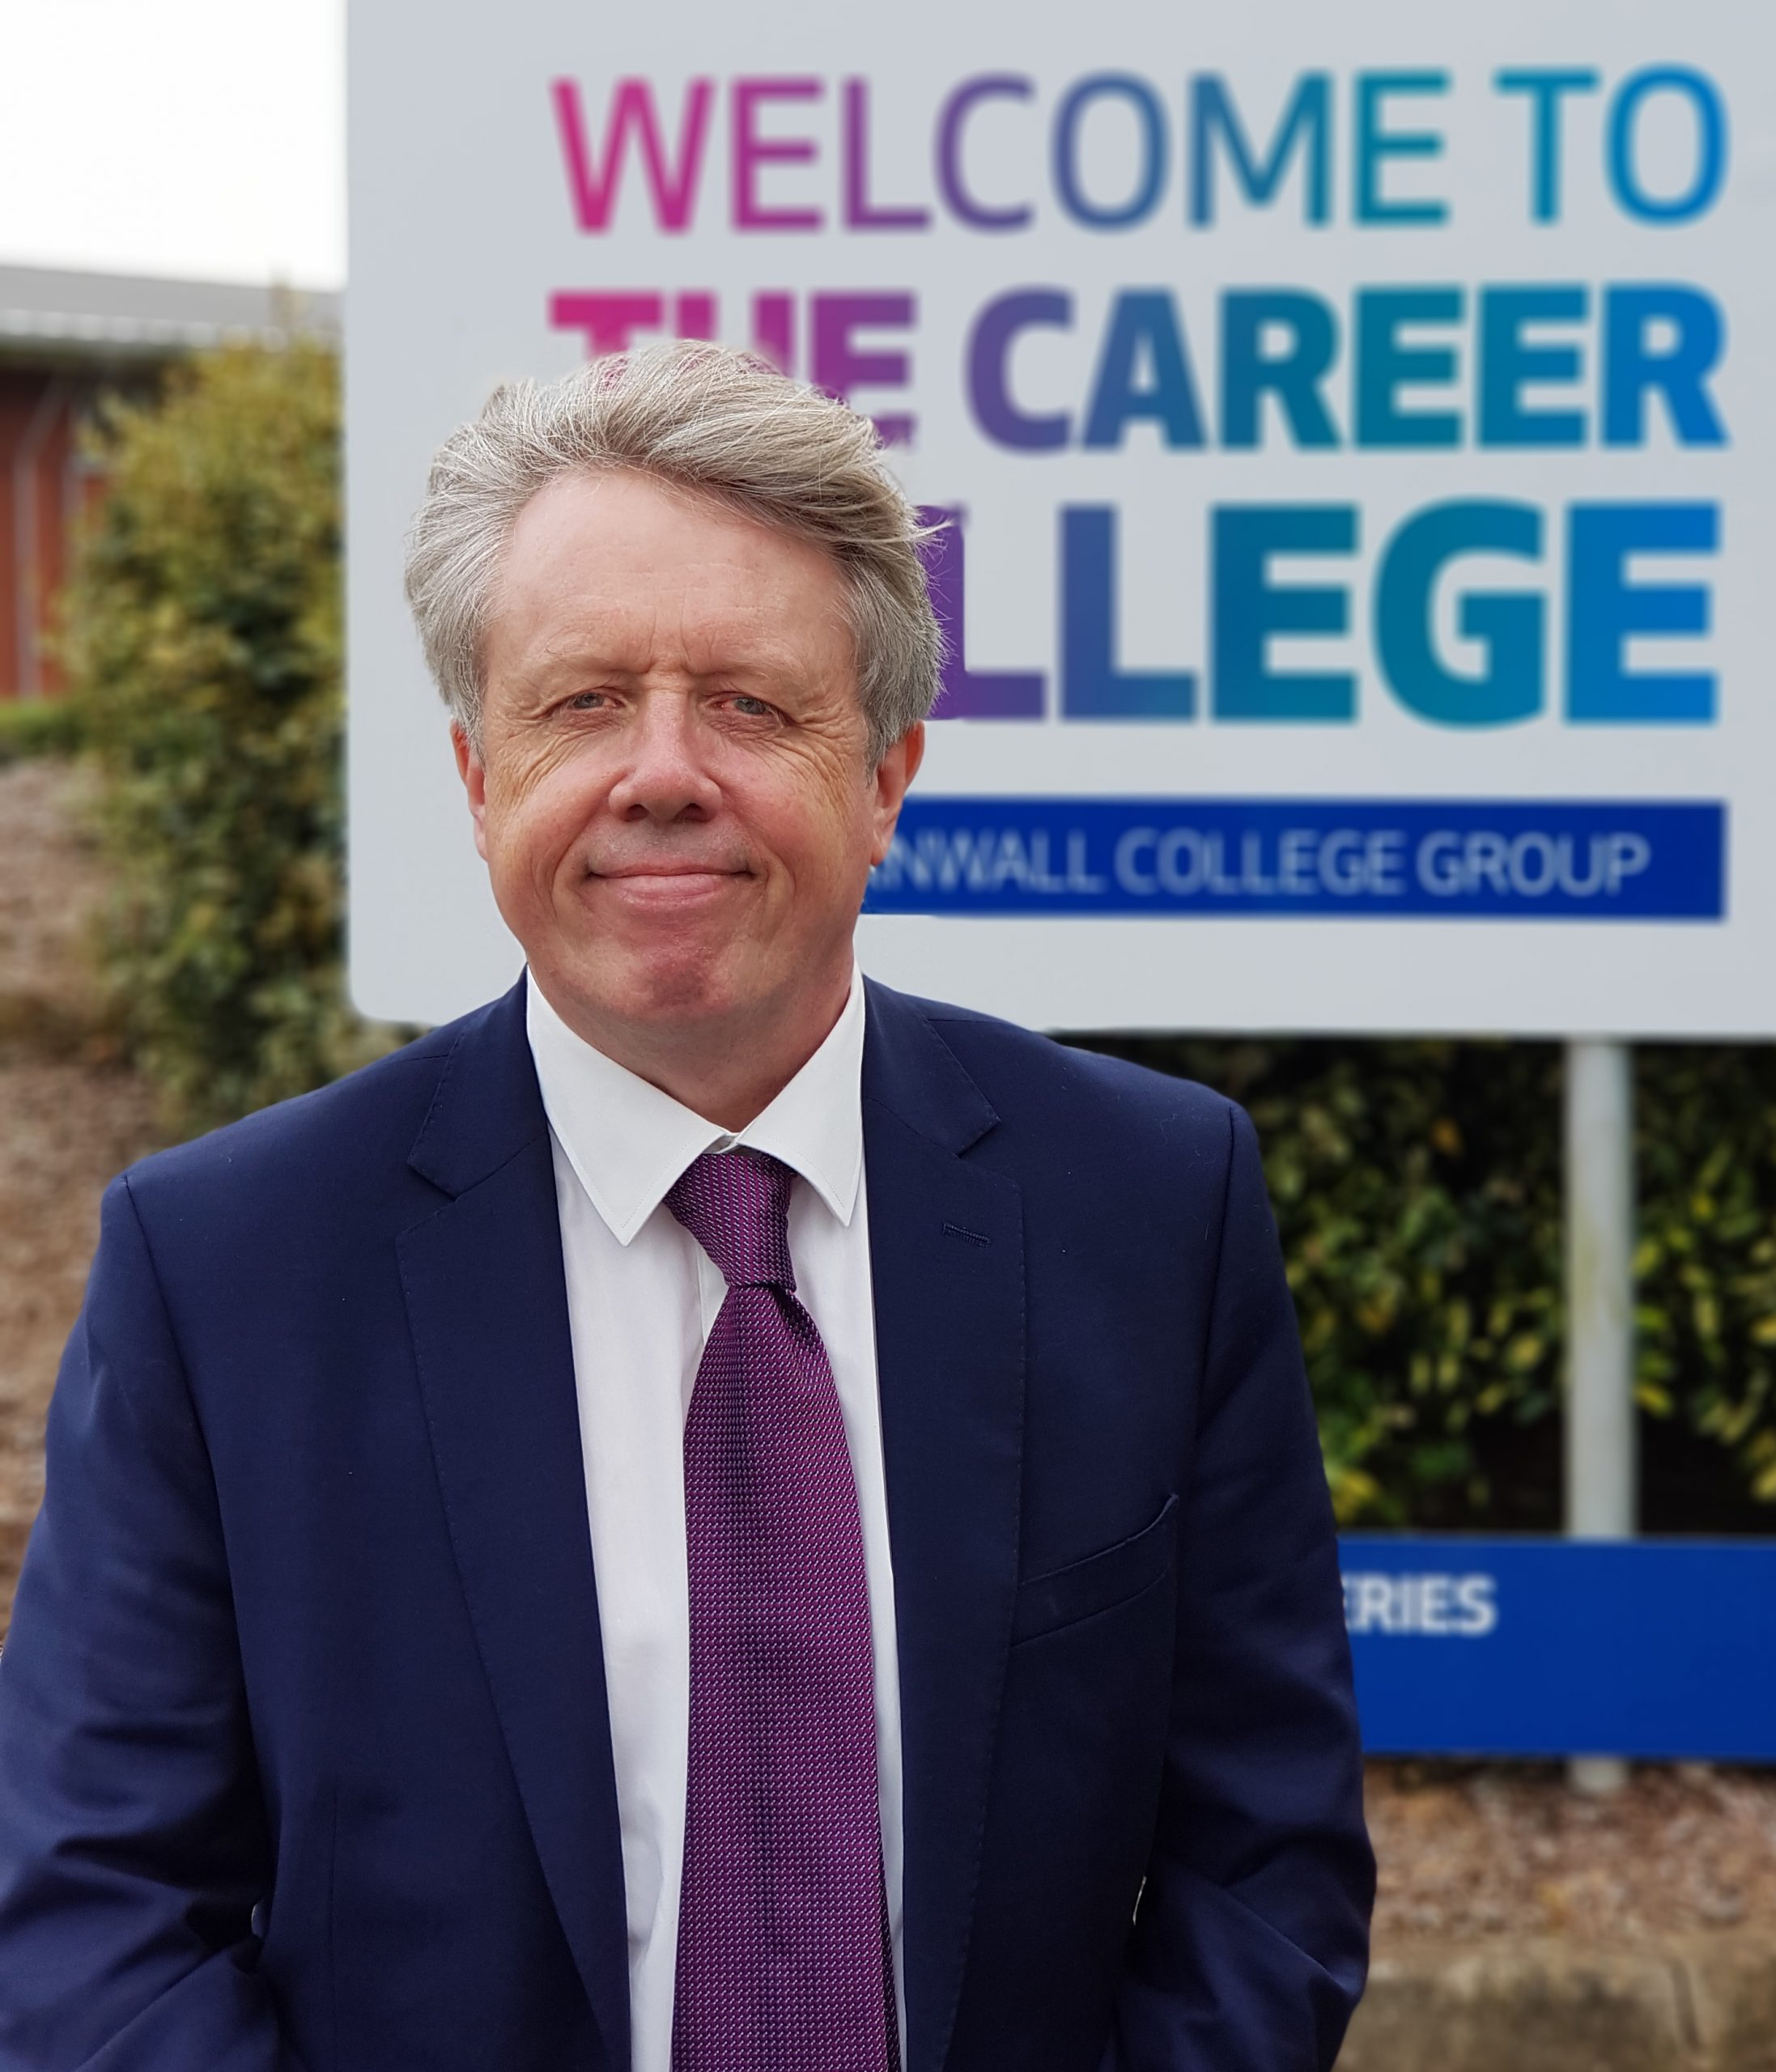 £3,000 apprenticeship hire cash boost extended